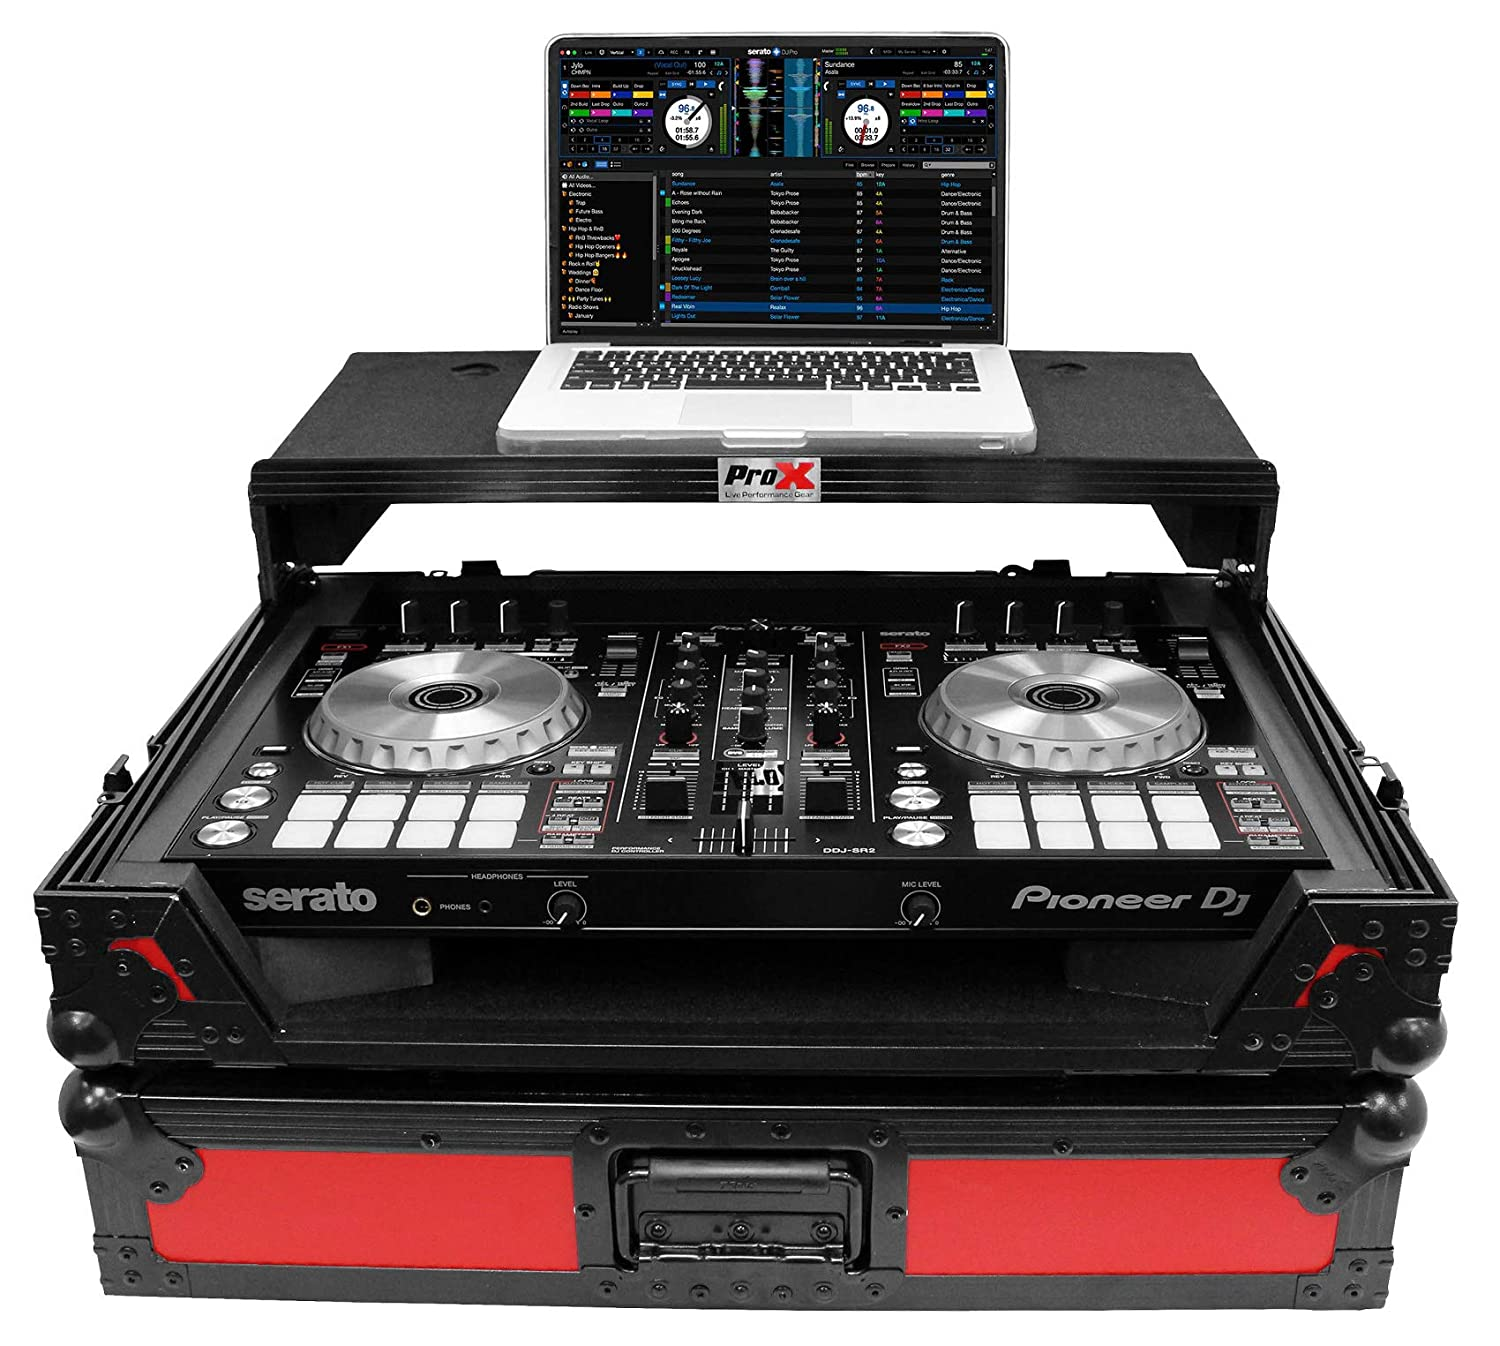 ProX XS-DDJSR2LTRB-LED Case+Sliding Laptop Shelf+LED's For Pioneer DDJ-SR2-Red Pro x Cases